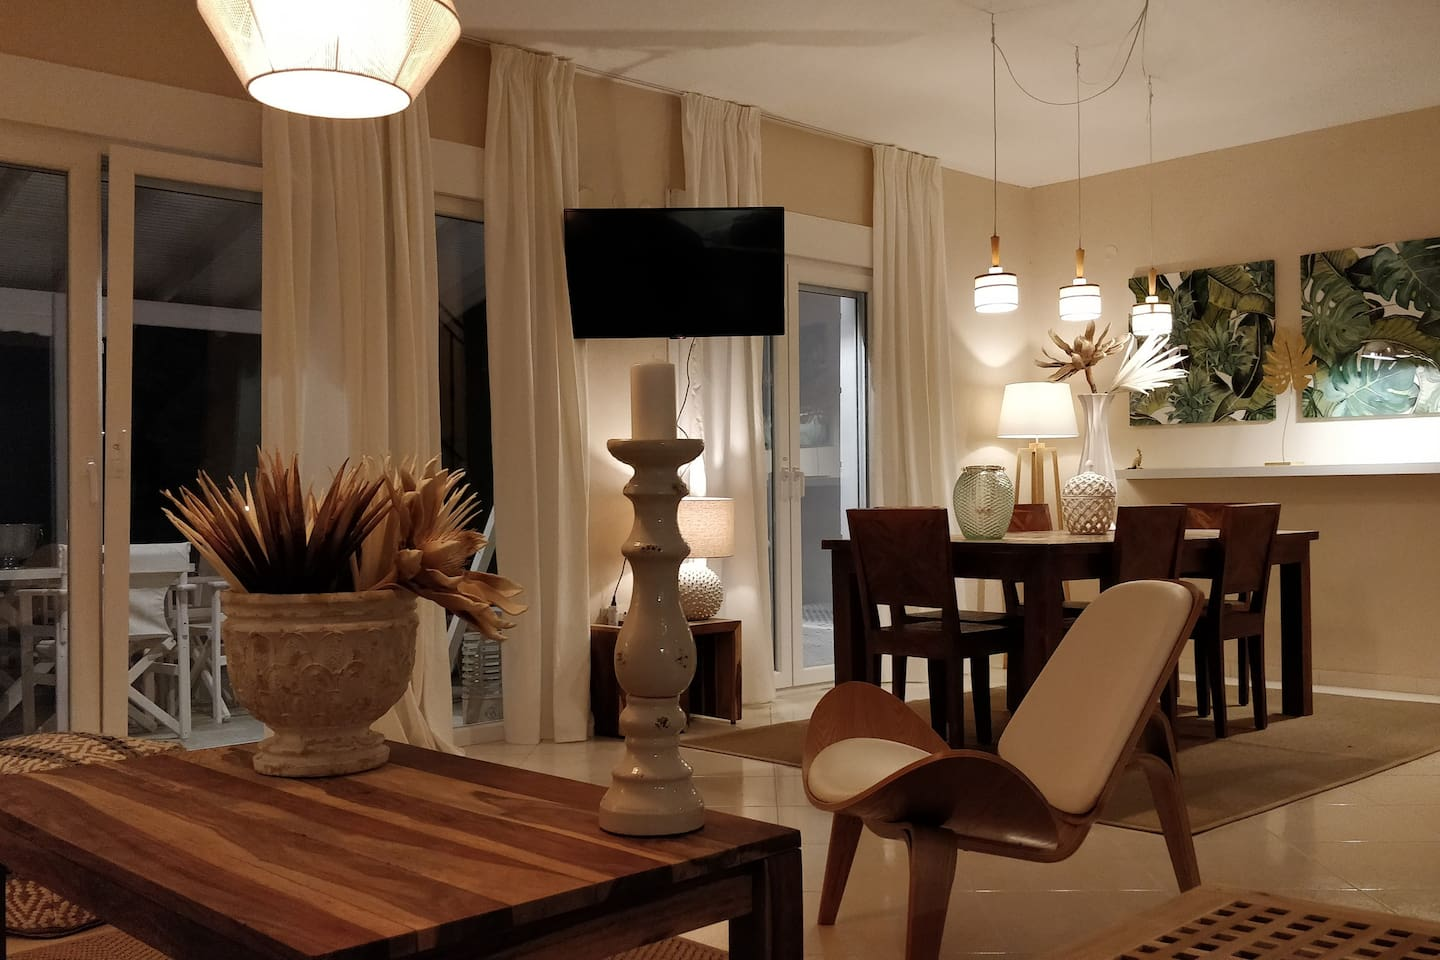 The living room and dinning